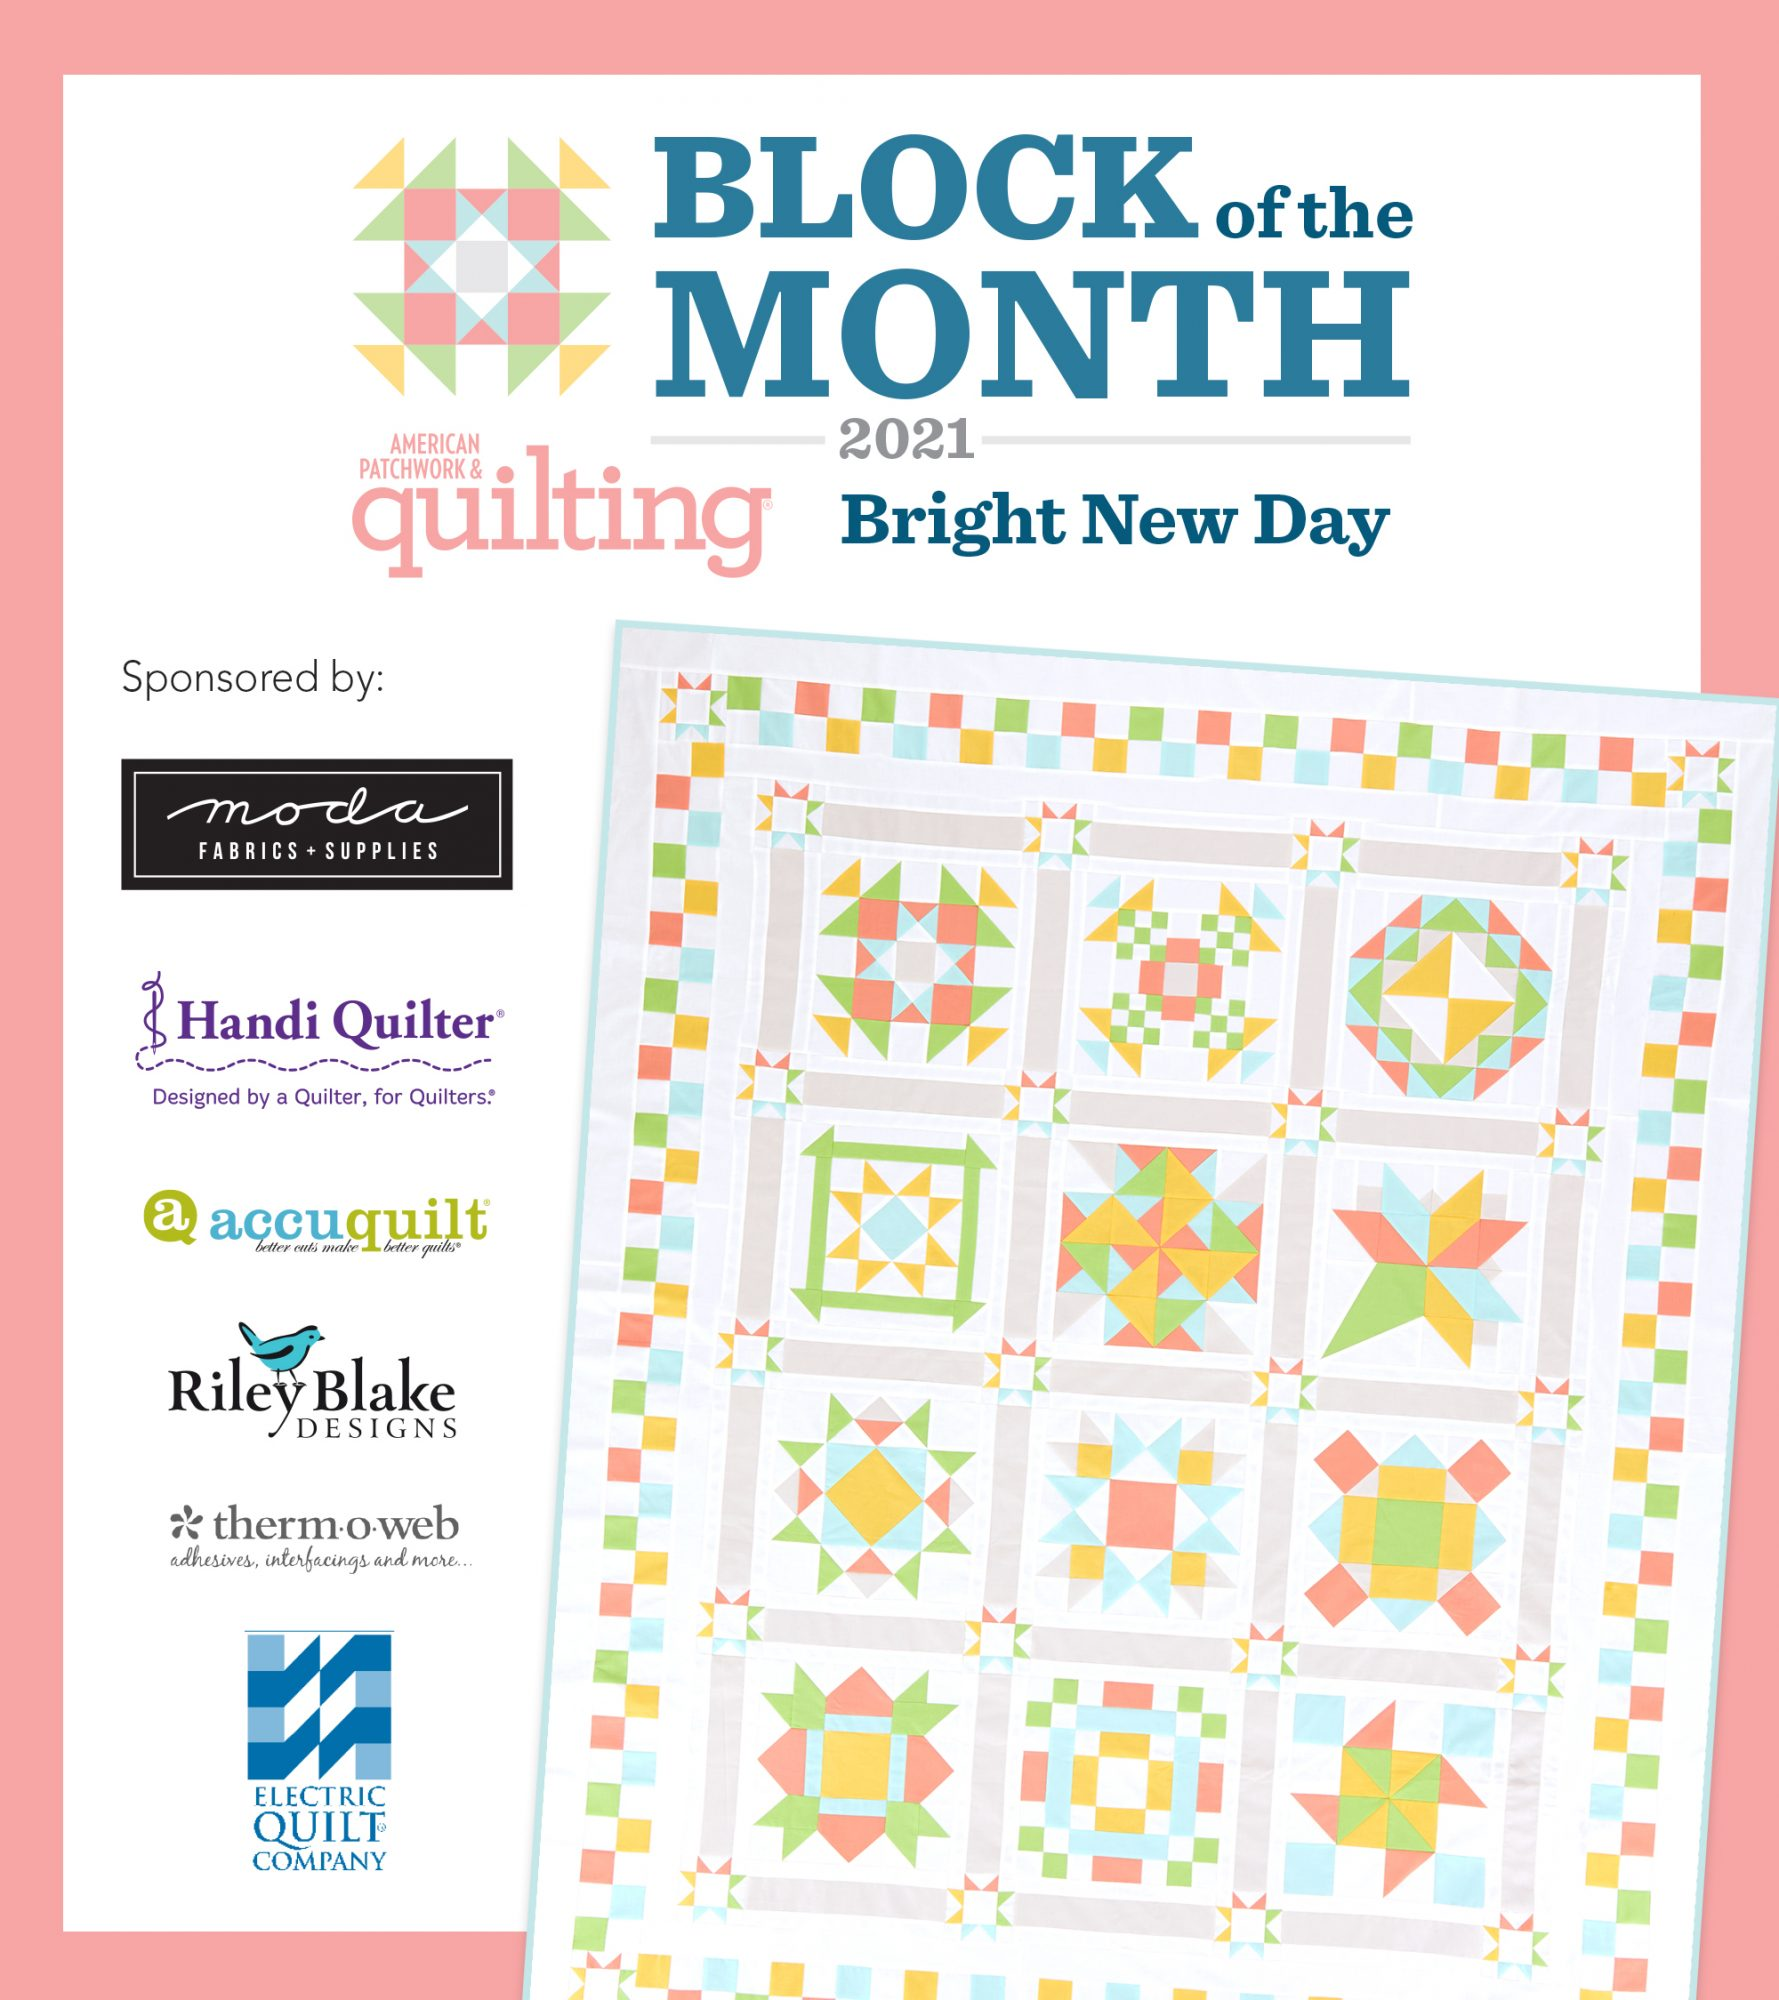 Block of the Month image with sponsors